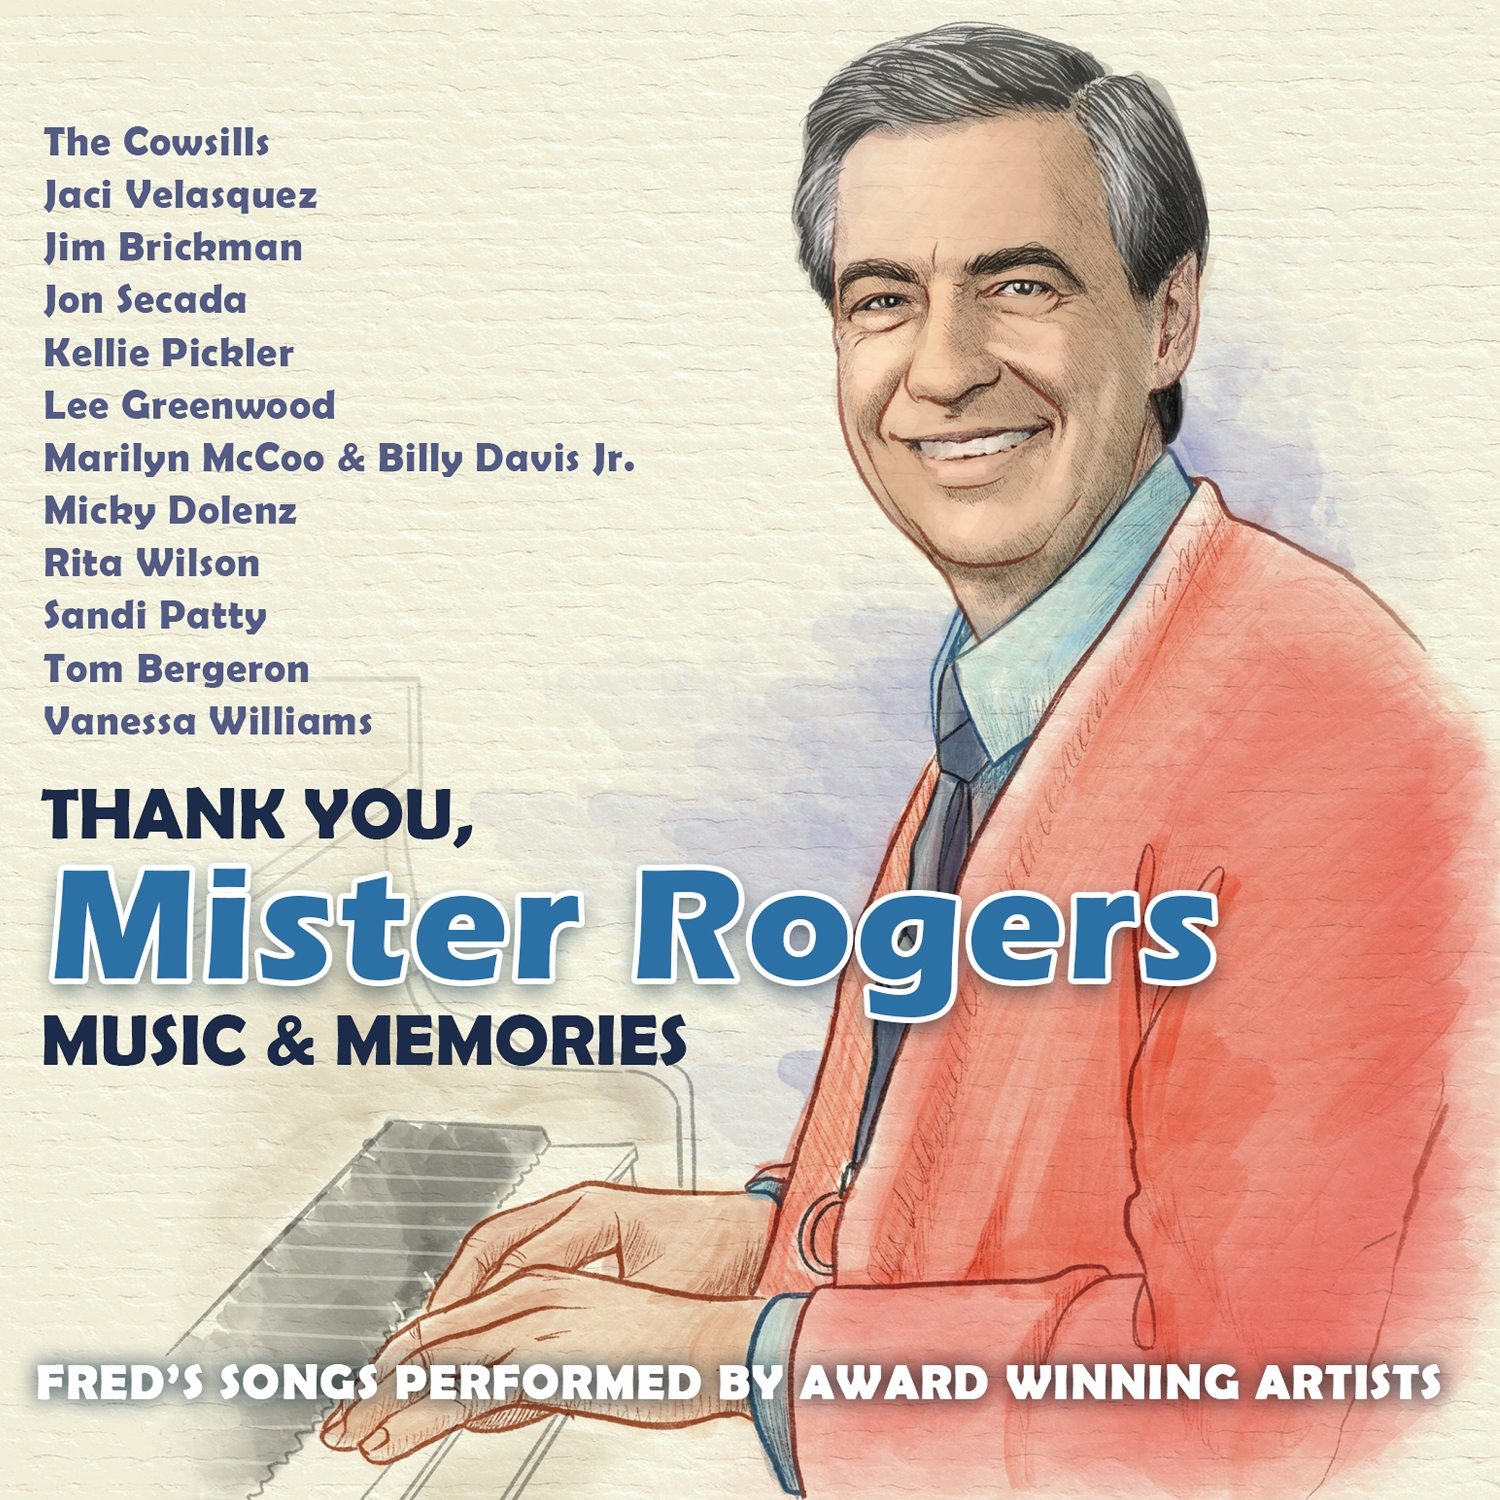 The Mayor Of Nashville And Various Artists Proclaim November As Thank You Mister Rogers Month Today Marks The Release Of The New Tribute Album Thank You Mister Rogers Music Memories Bob